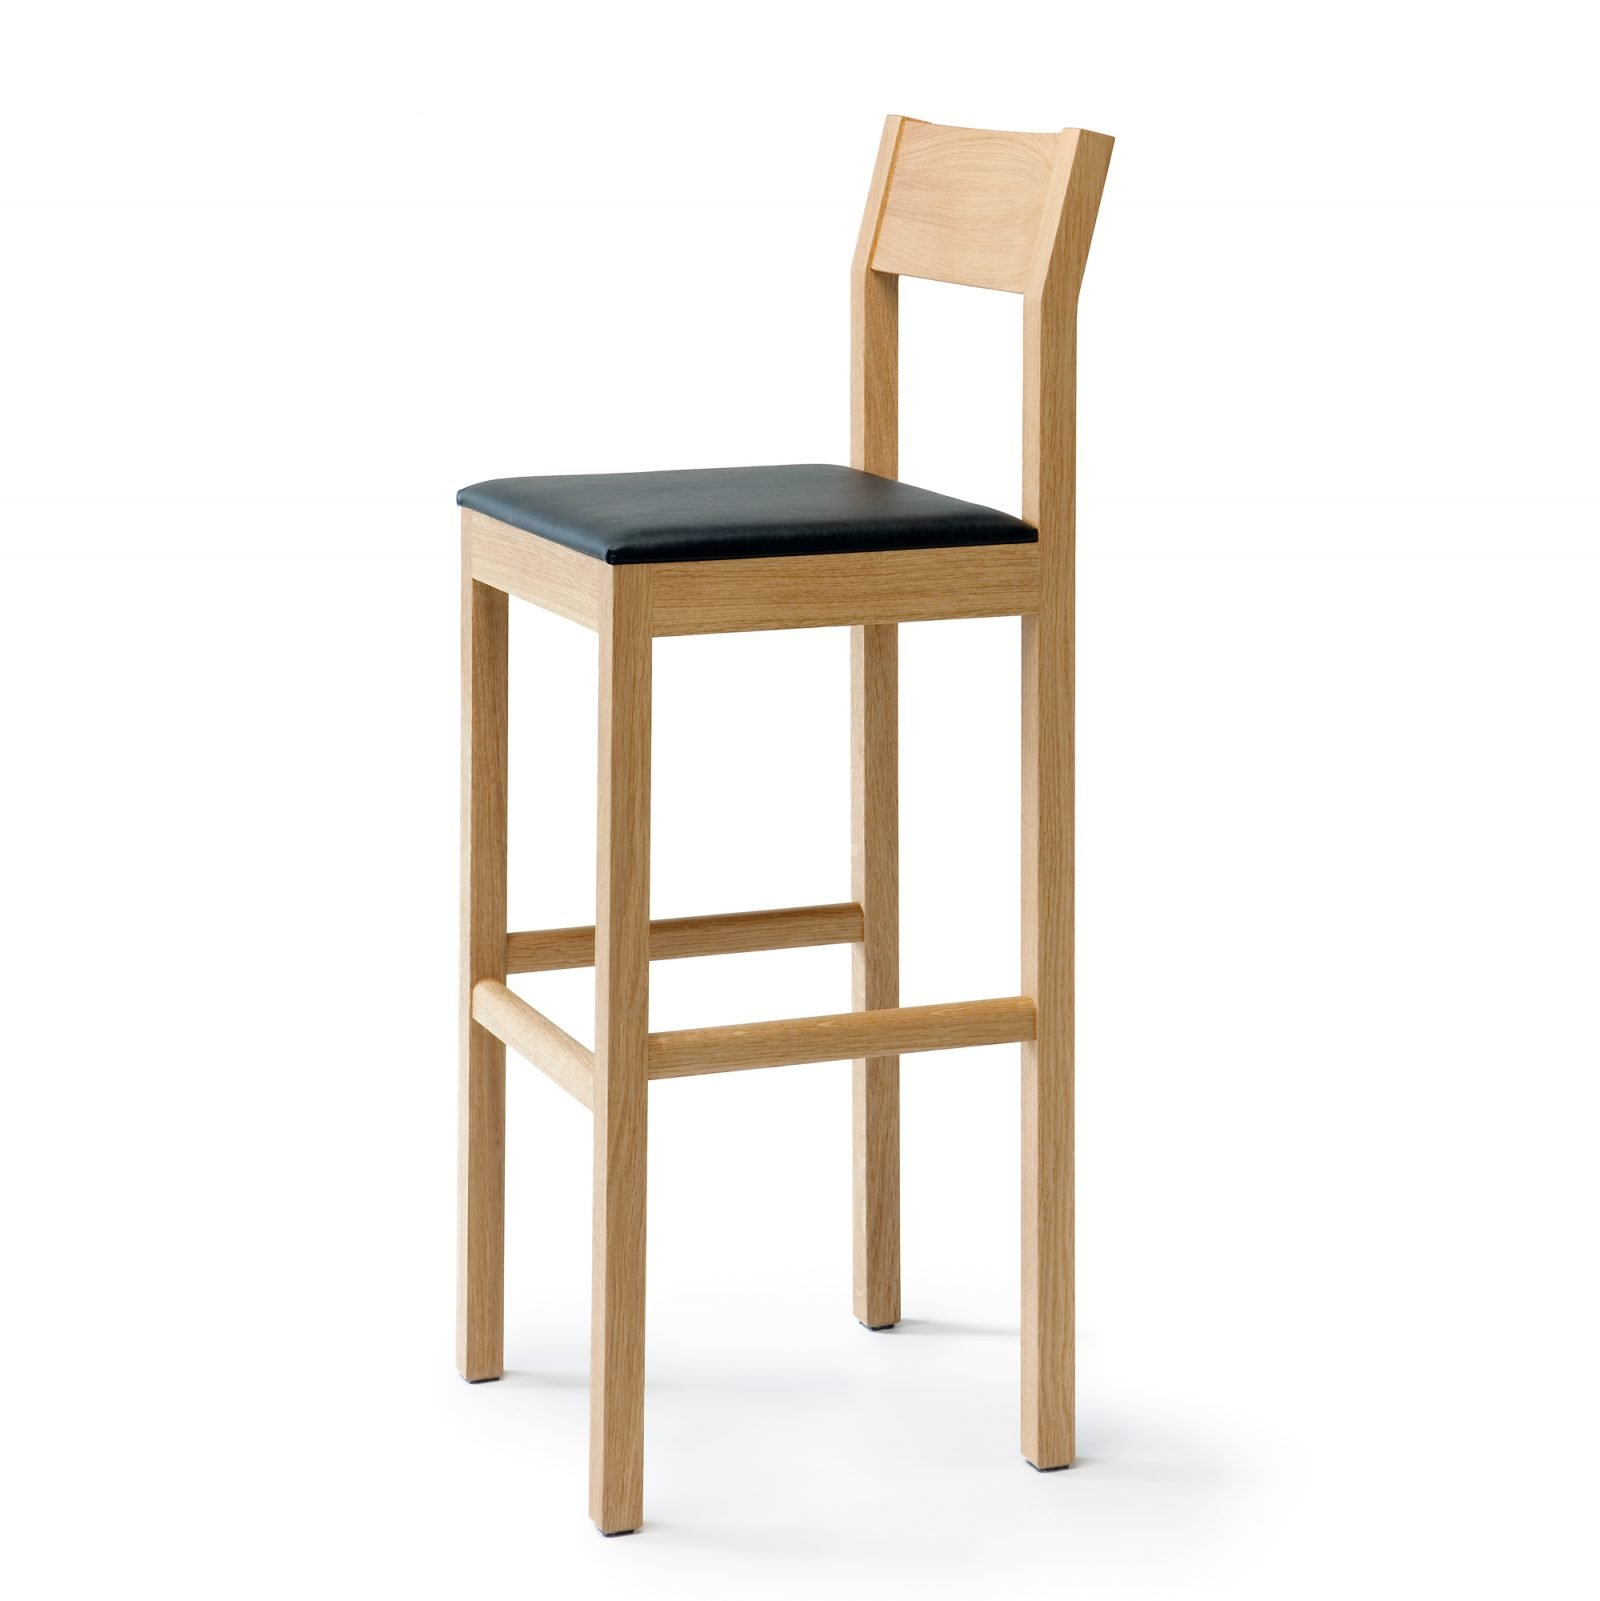 seminar-kvbt1-bar-chair-4